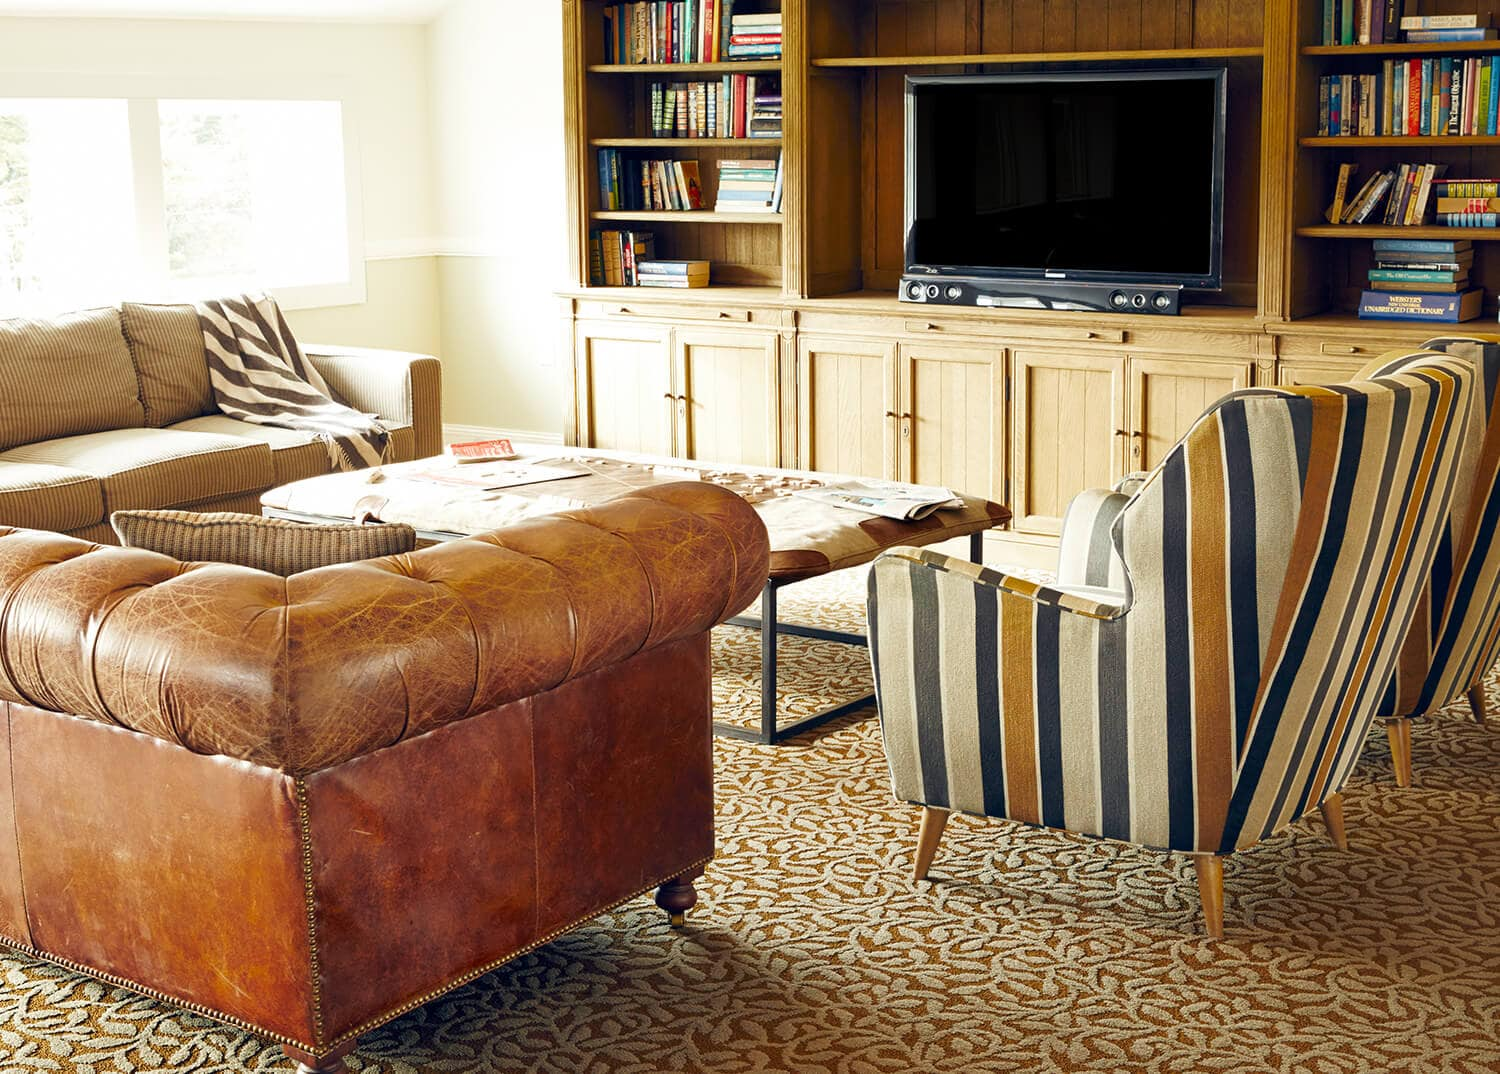 Men's lounge with leather furniture and warm decor at Mountainside Treatment Center in Canaan, CT.